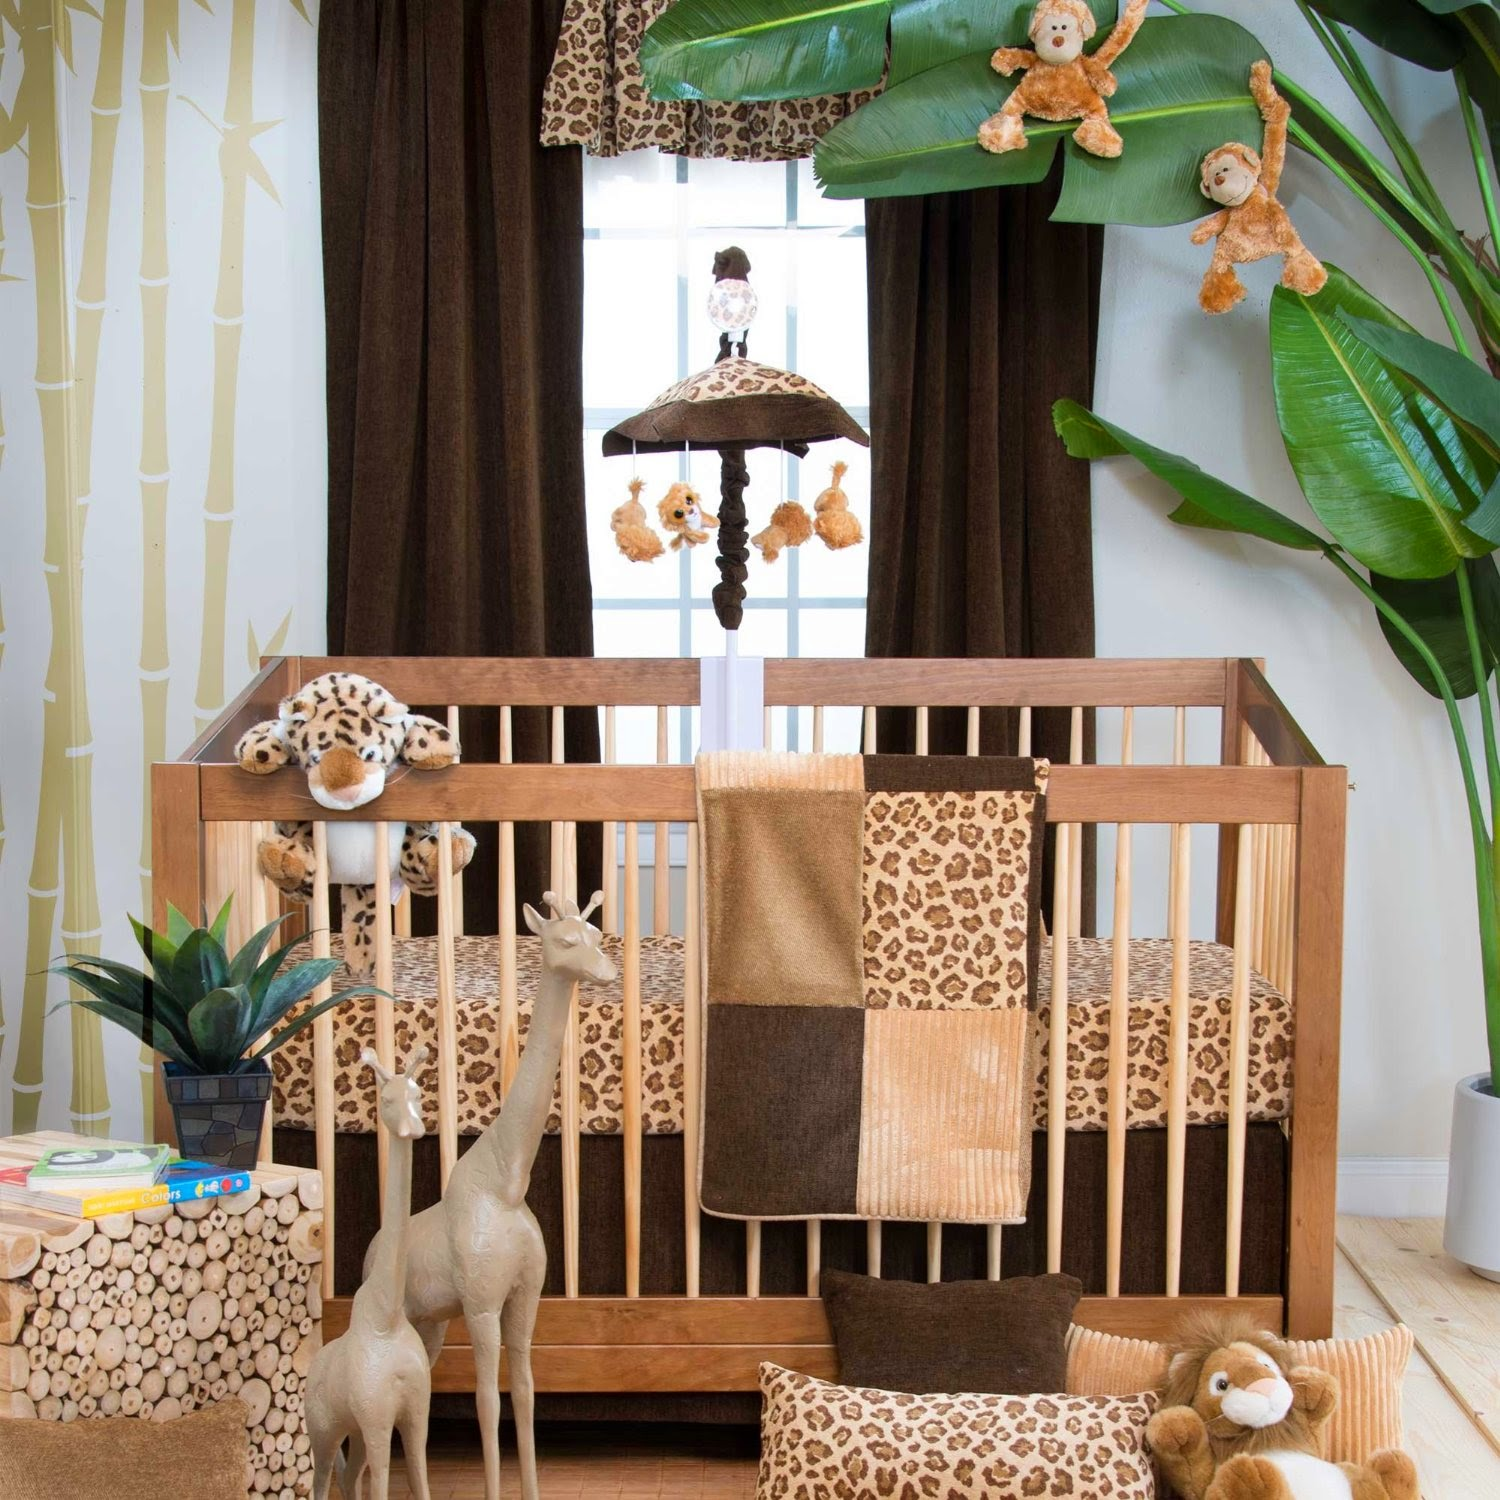 Animal Leopard And Cheetah Print Jungle Baby Nursery